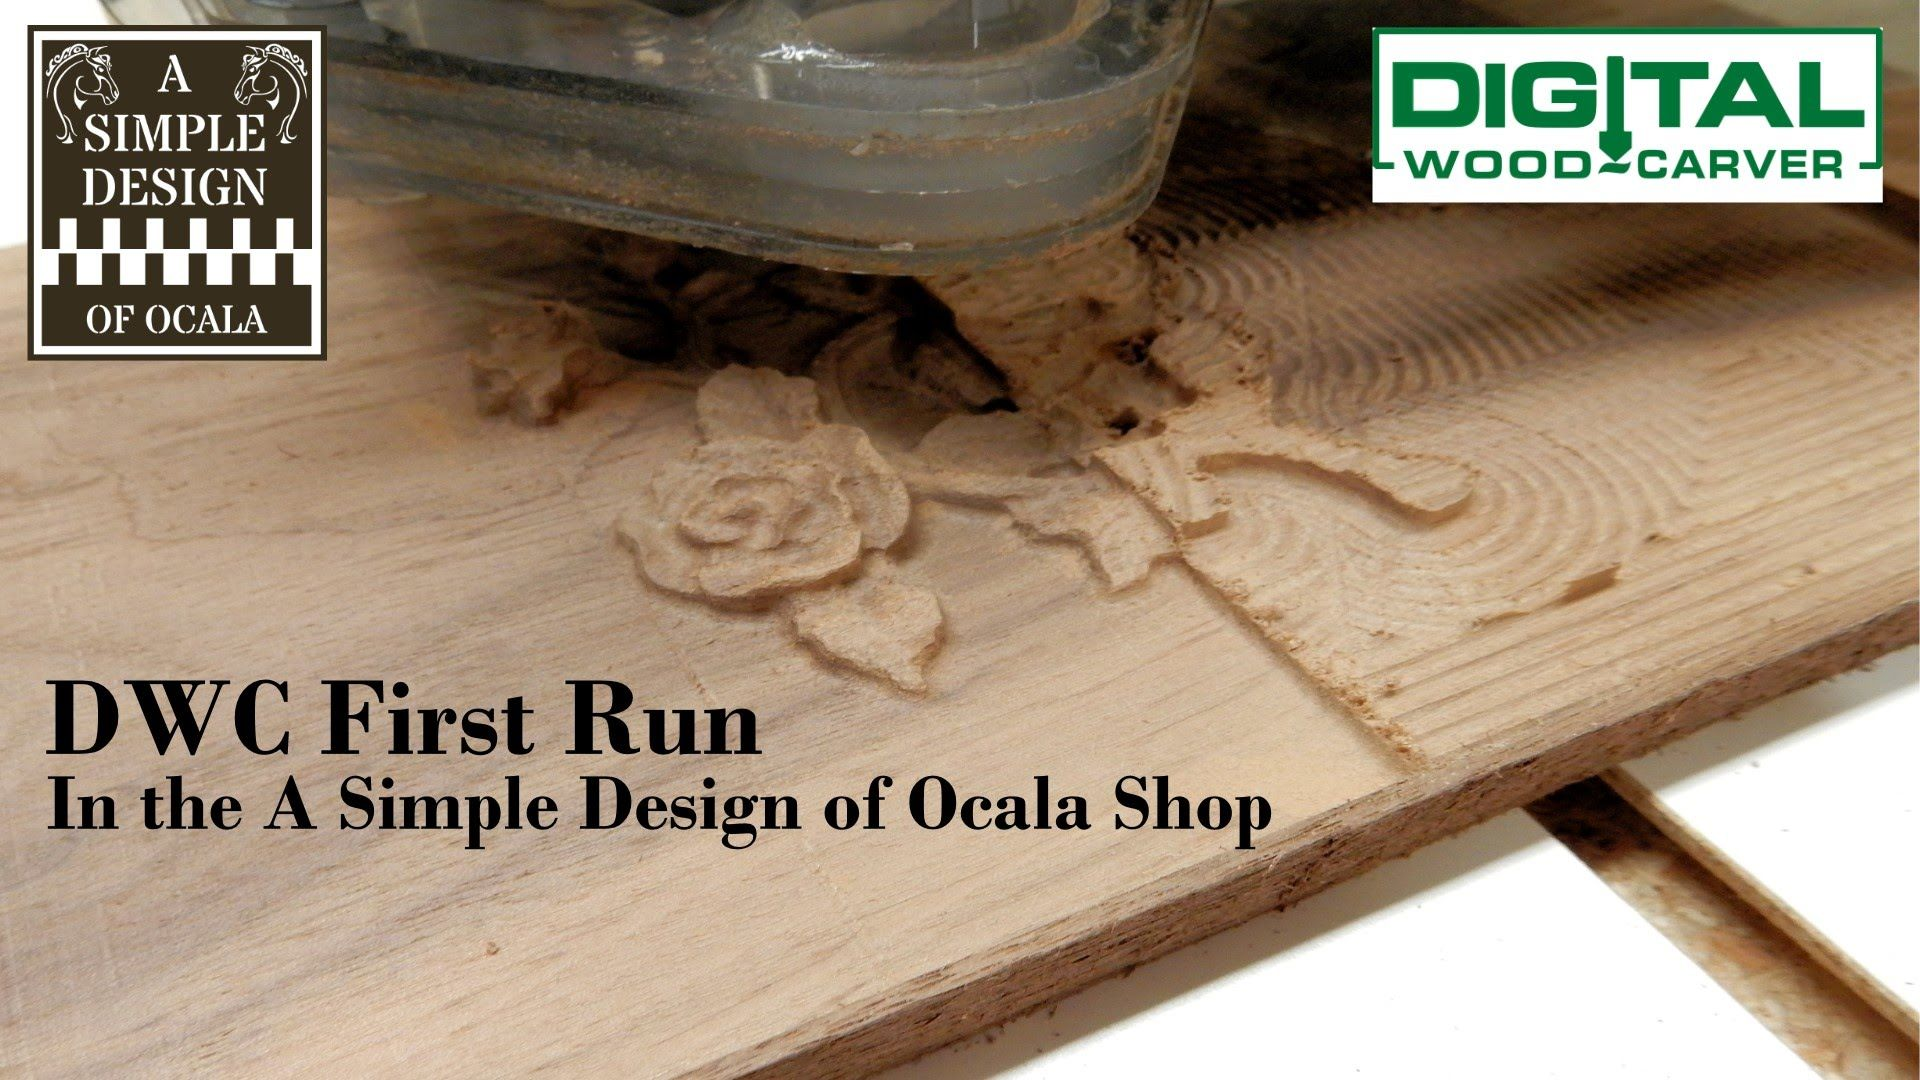 This Is The First Run Of My New Digital Wood Carver Cnc This Piece